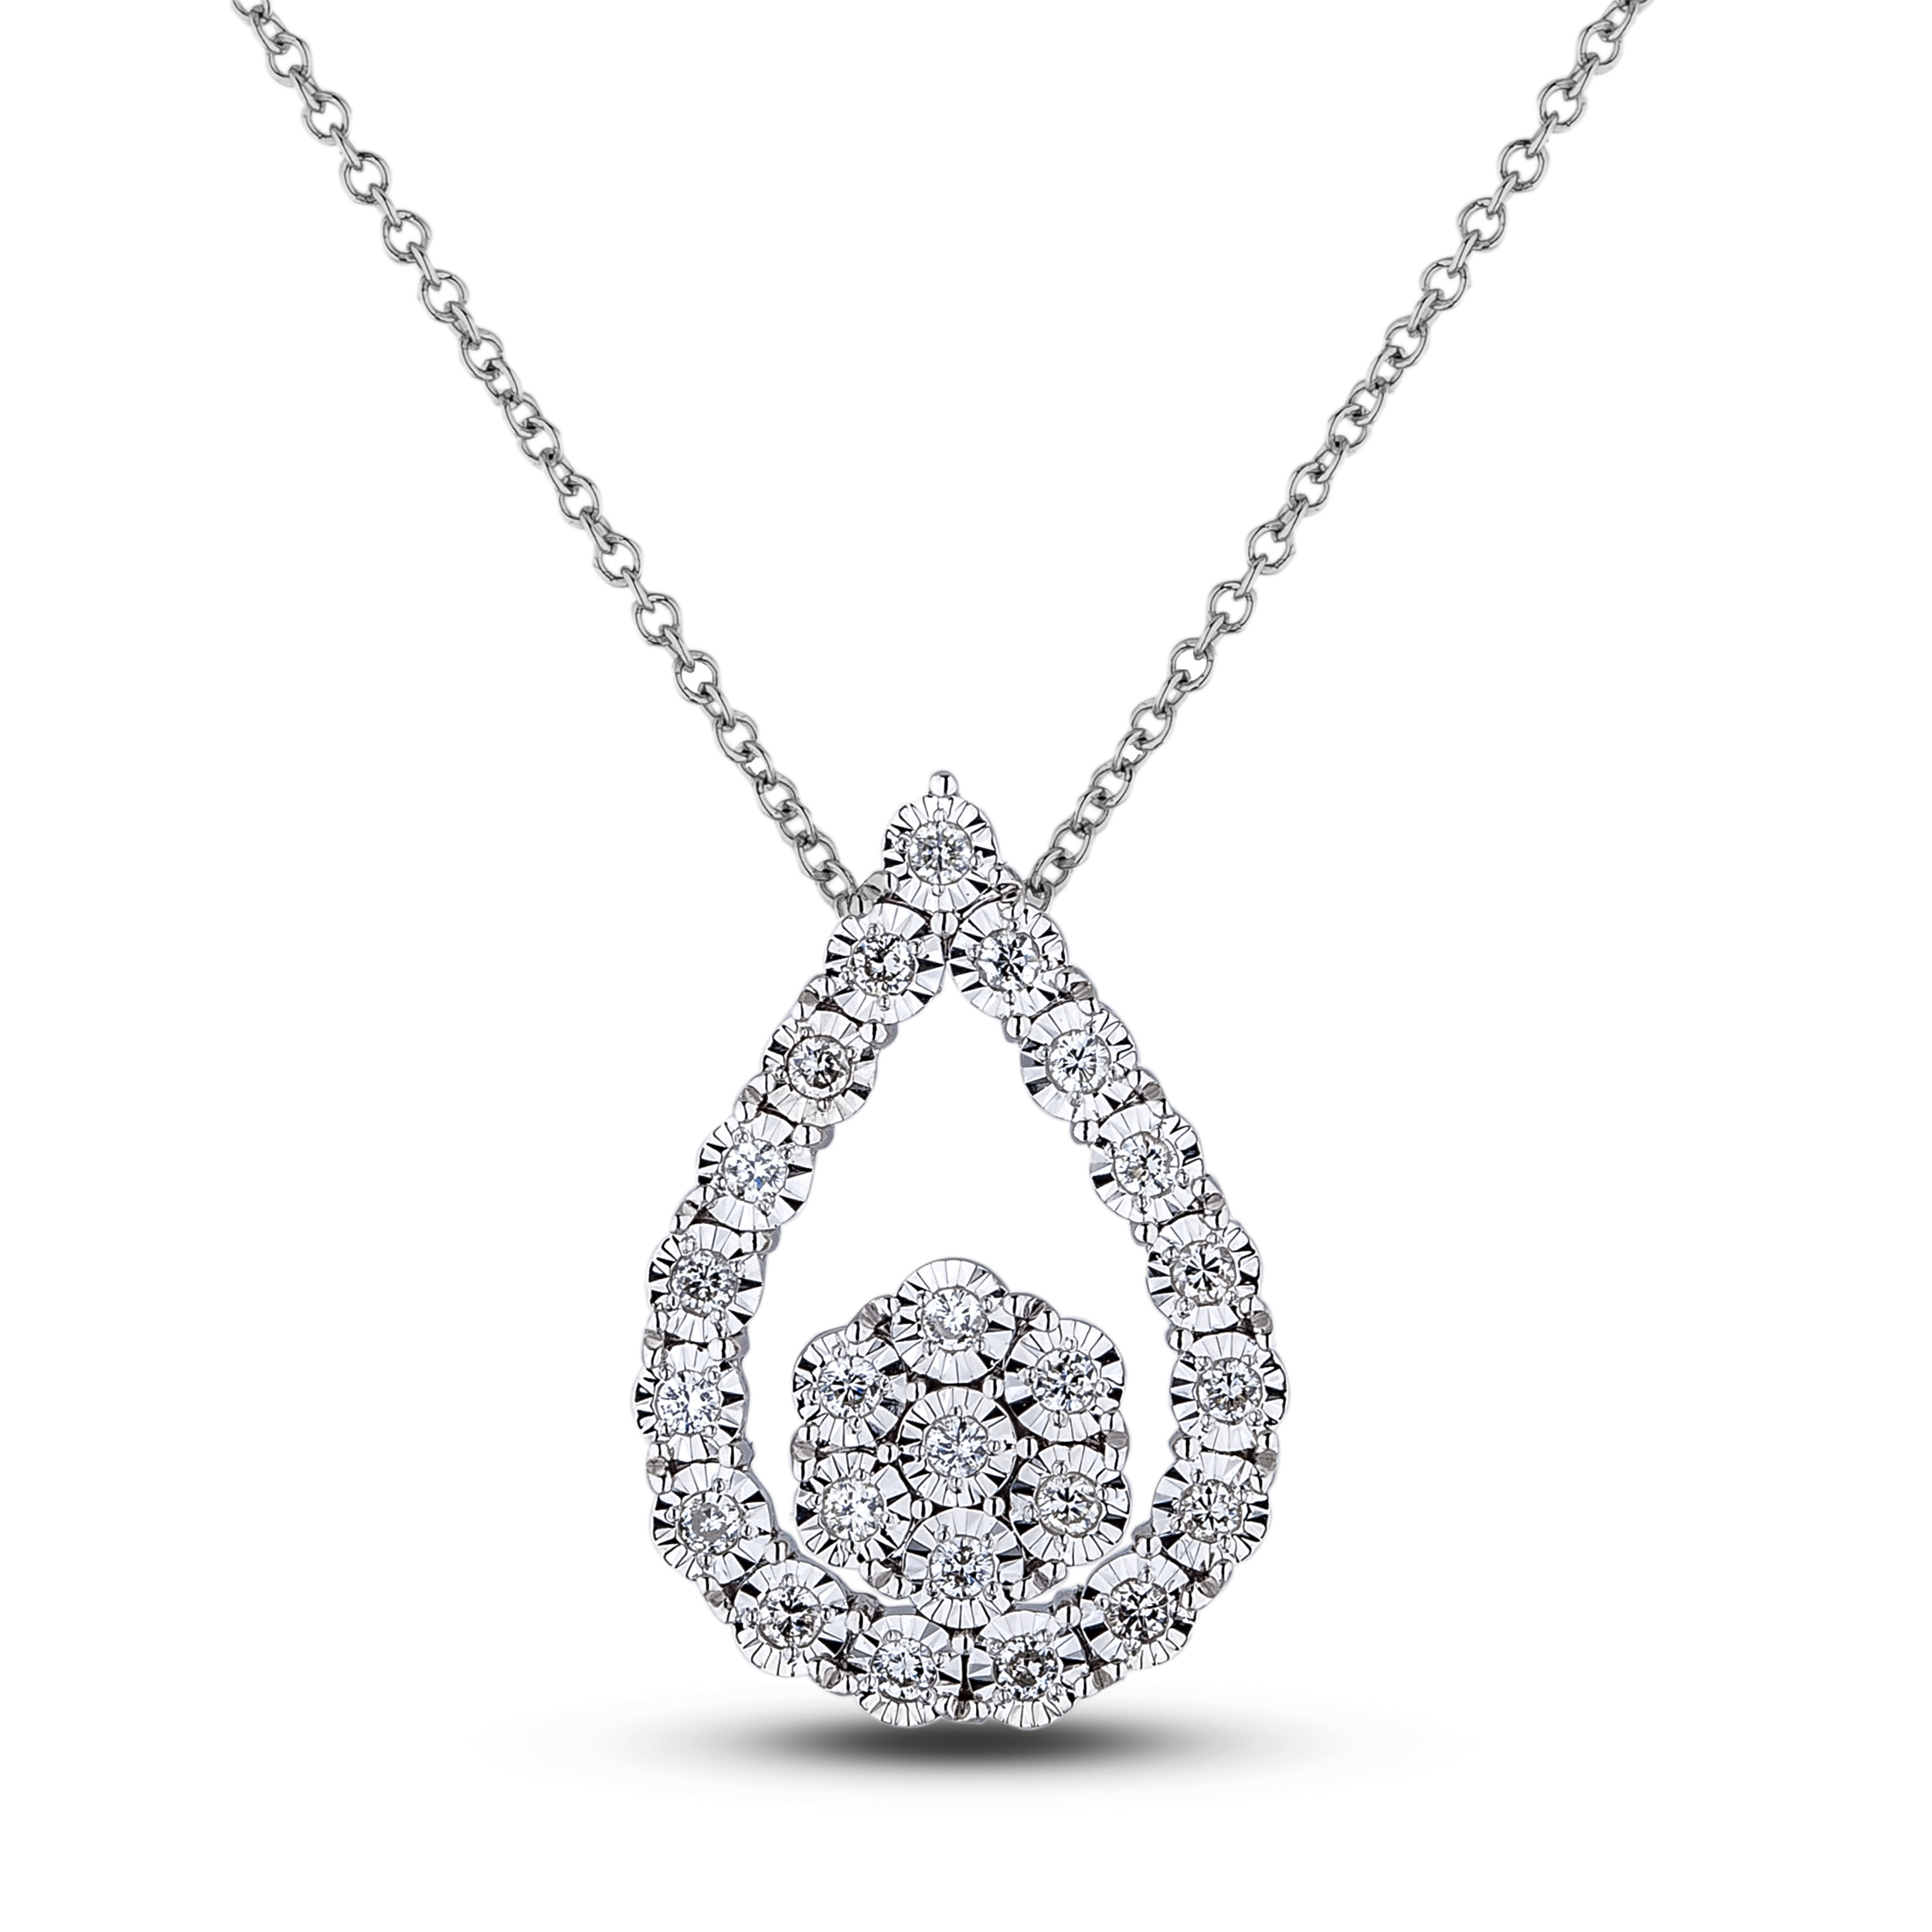 Diamond Pendants JSL-AFCP011624 (Pendants)